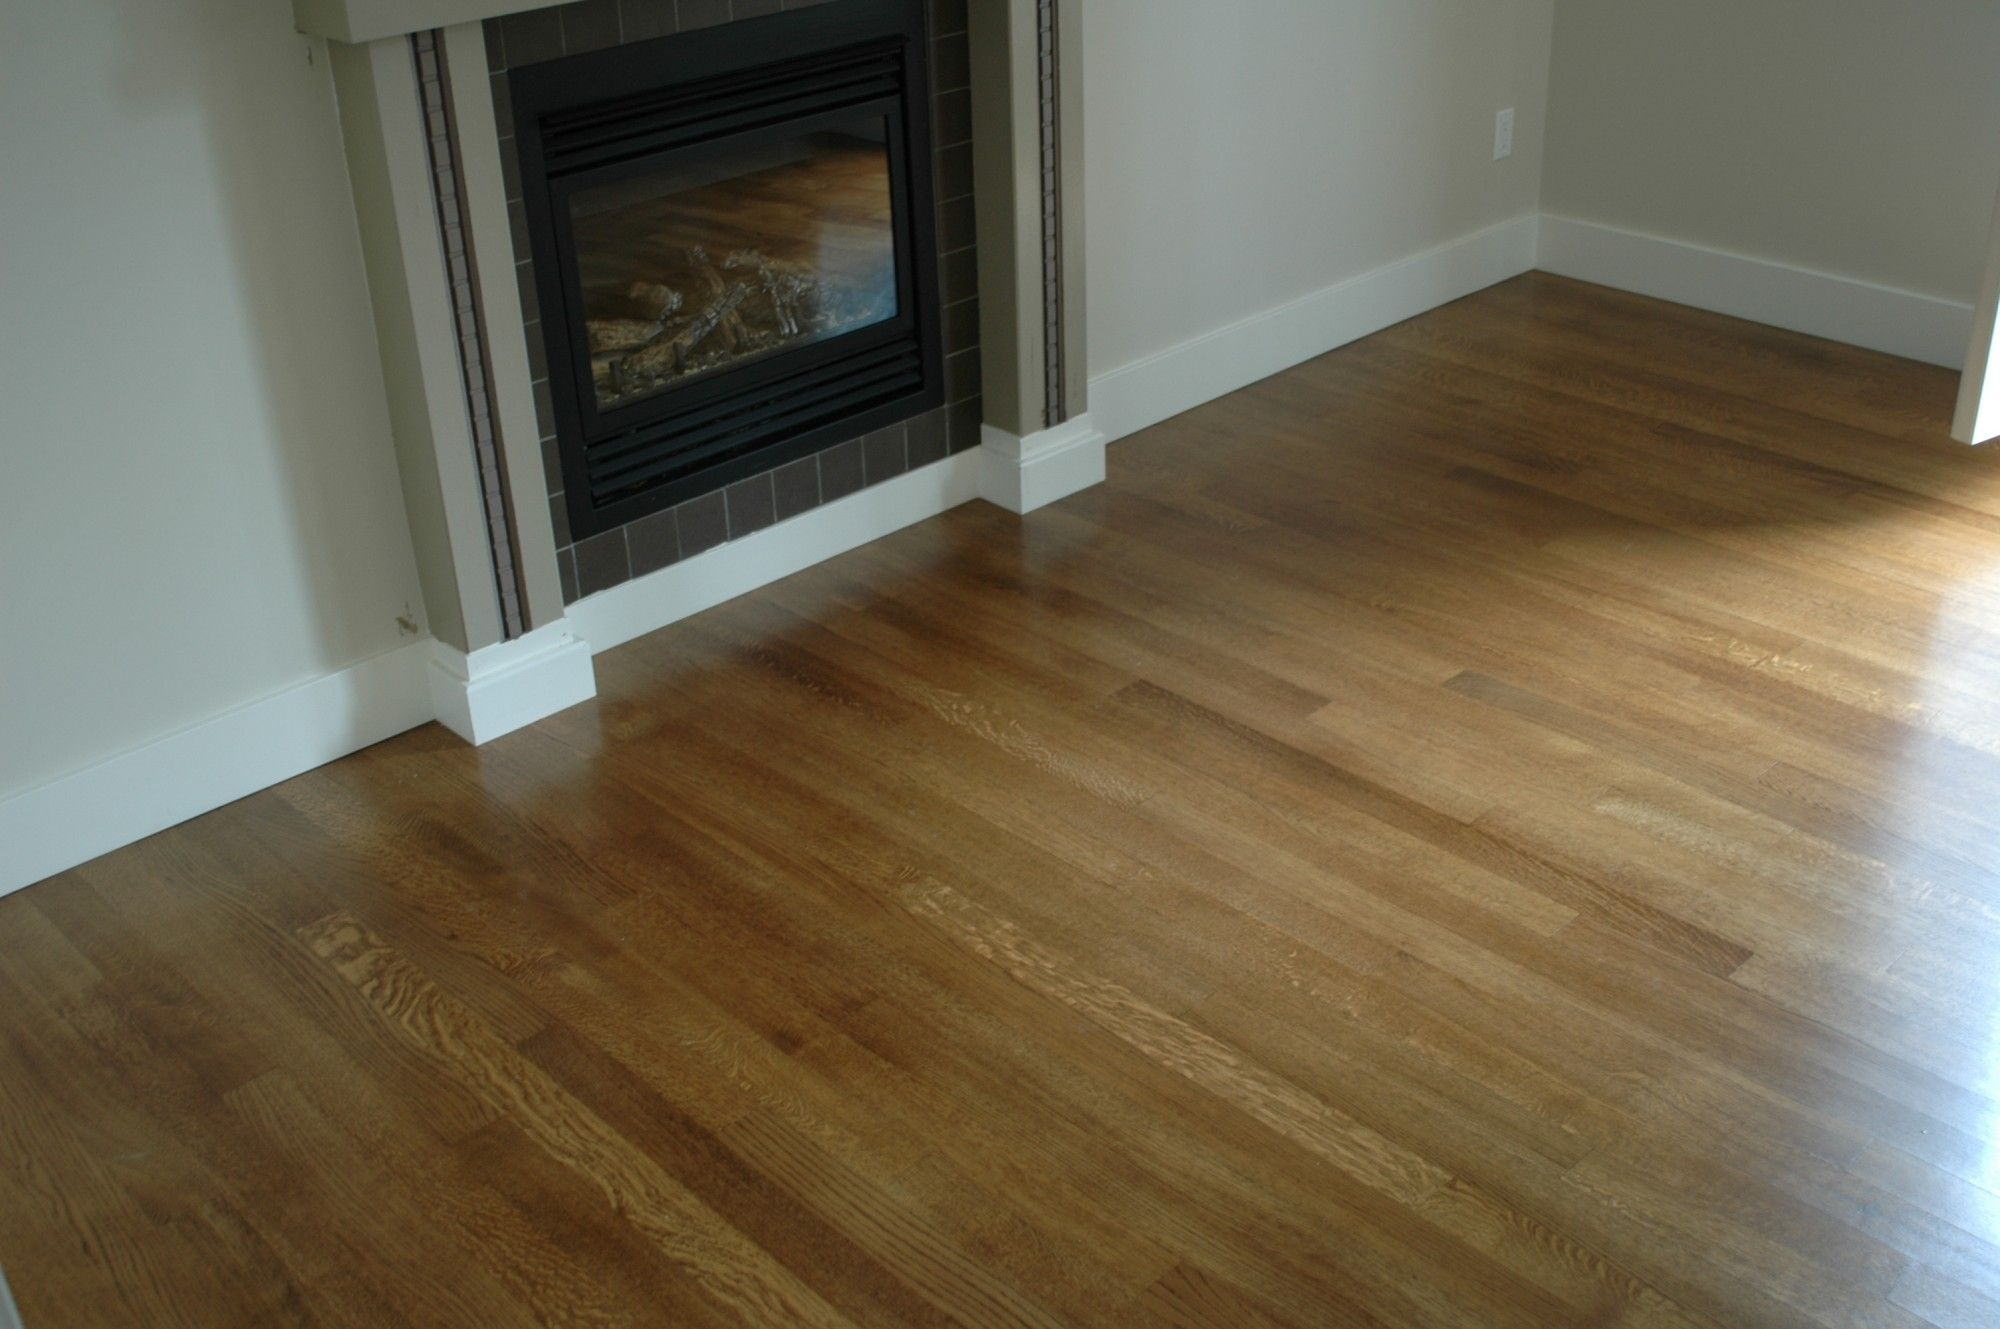 White Oak stained Medium Brown, this is my floor! So